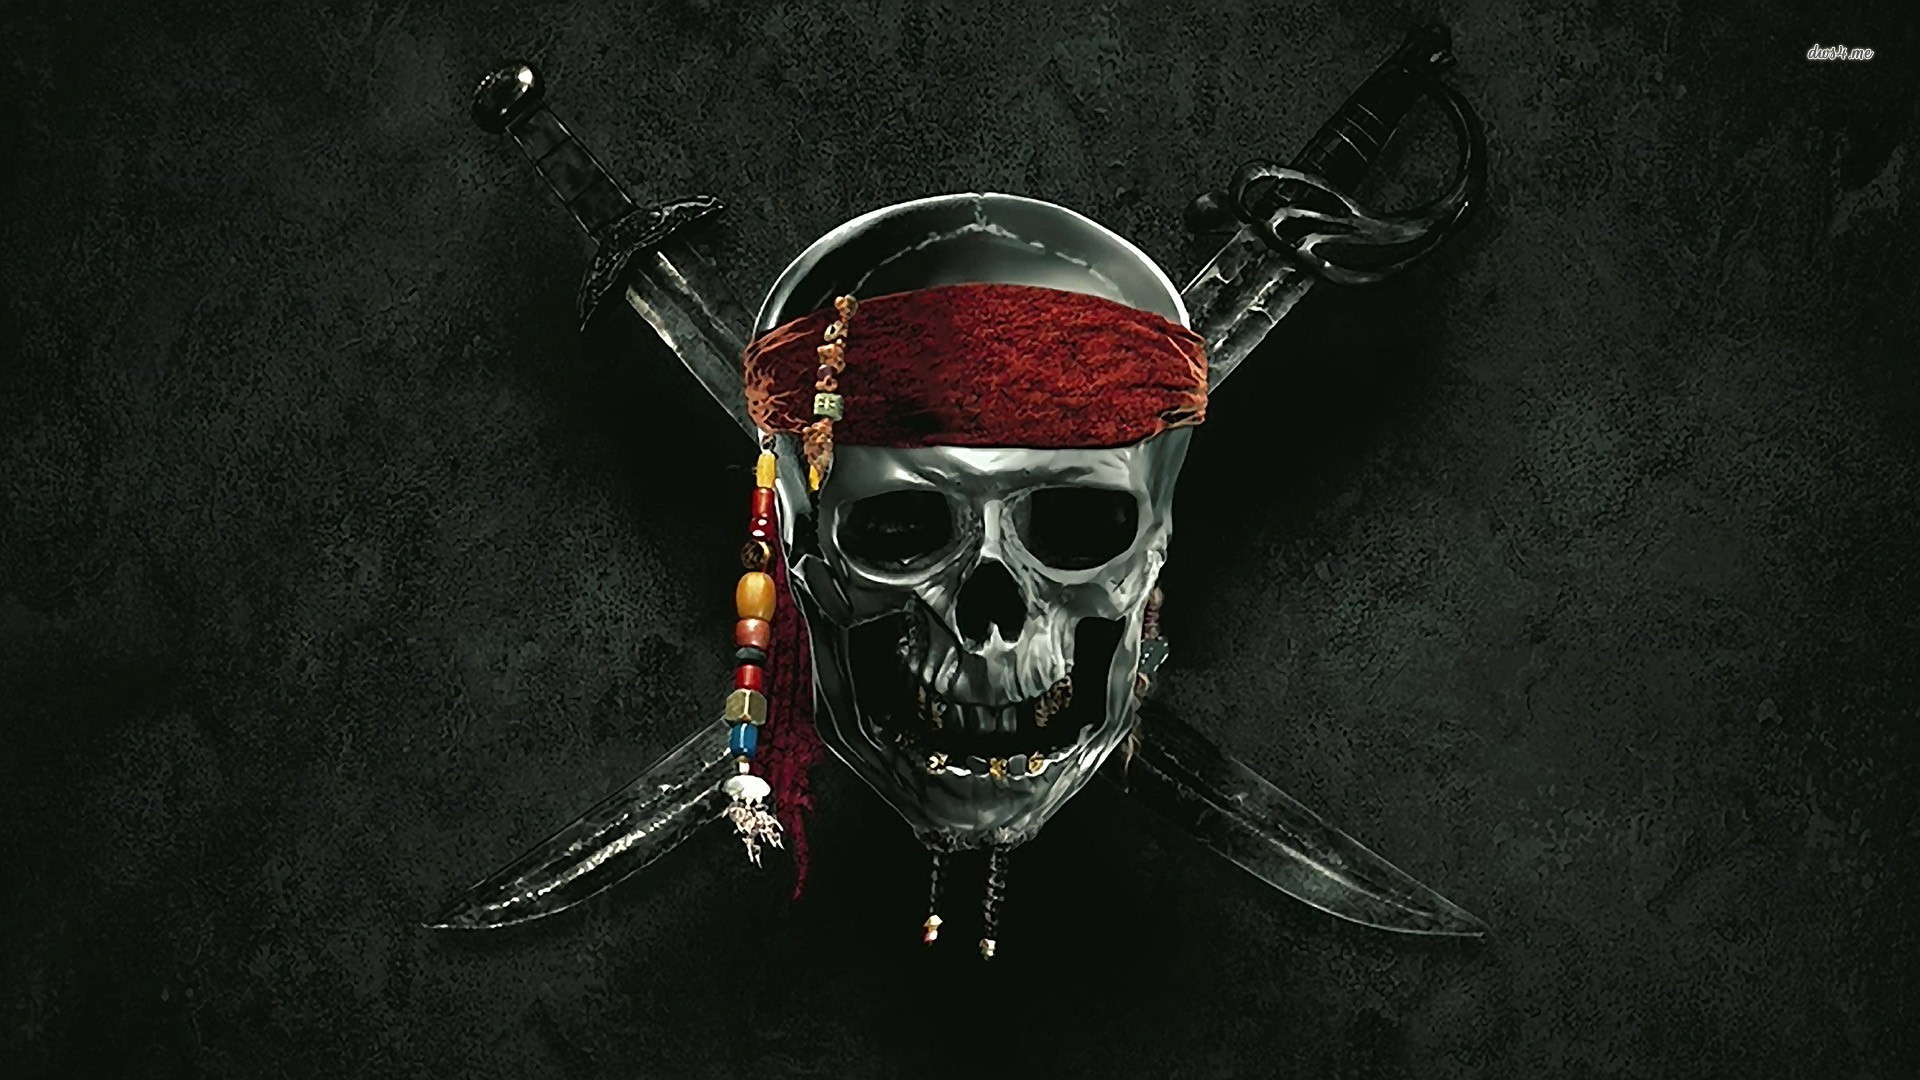 1920x1080 Pirates Of The Caribbean Wallpaper HD 7 - 1920 X 1080